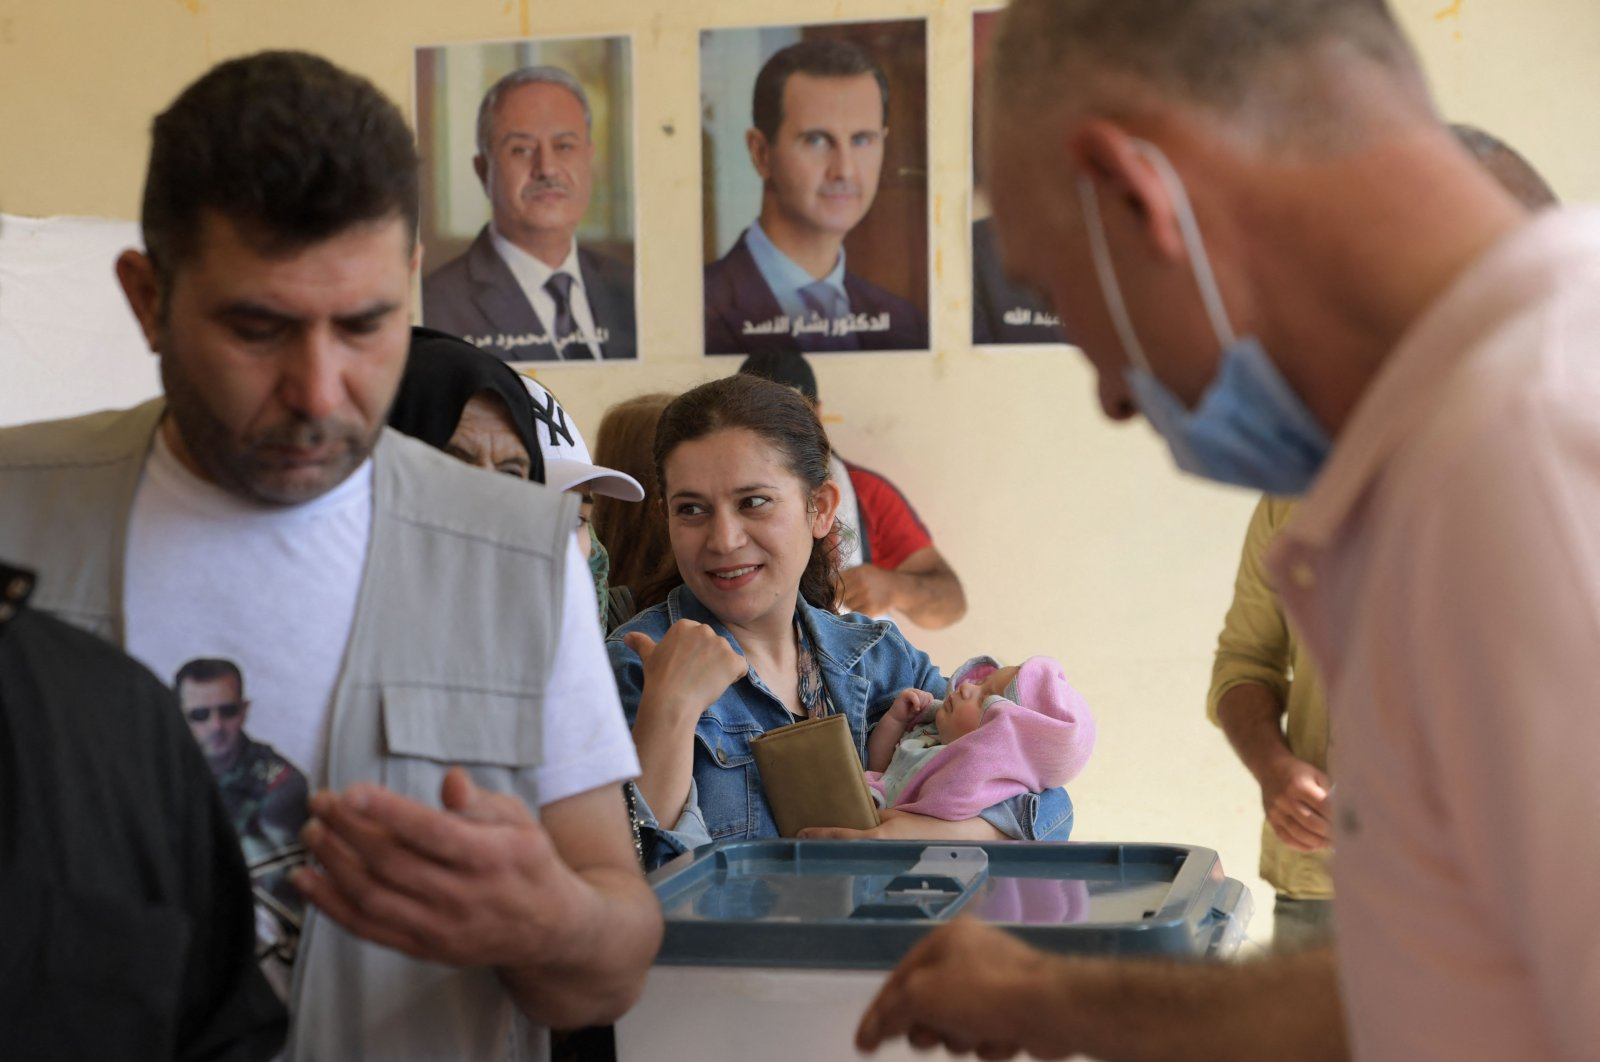 Syrians vote at a polling station in Aleppo, Syria, May 26, 2021. (AFP Photo)